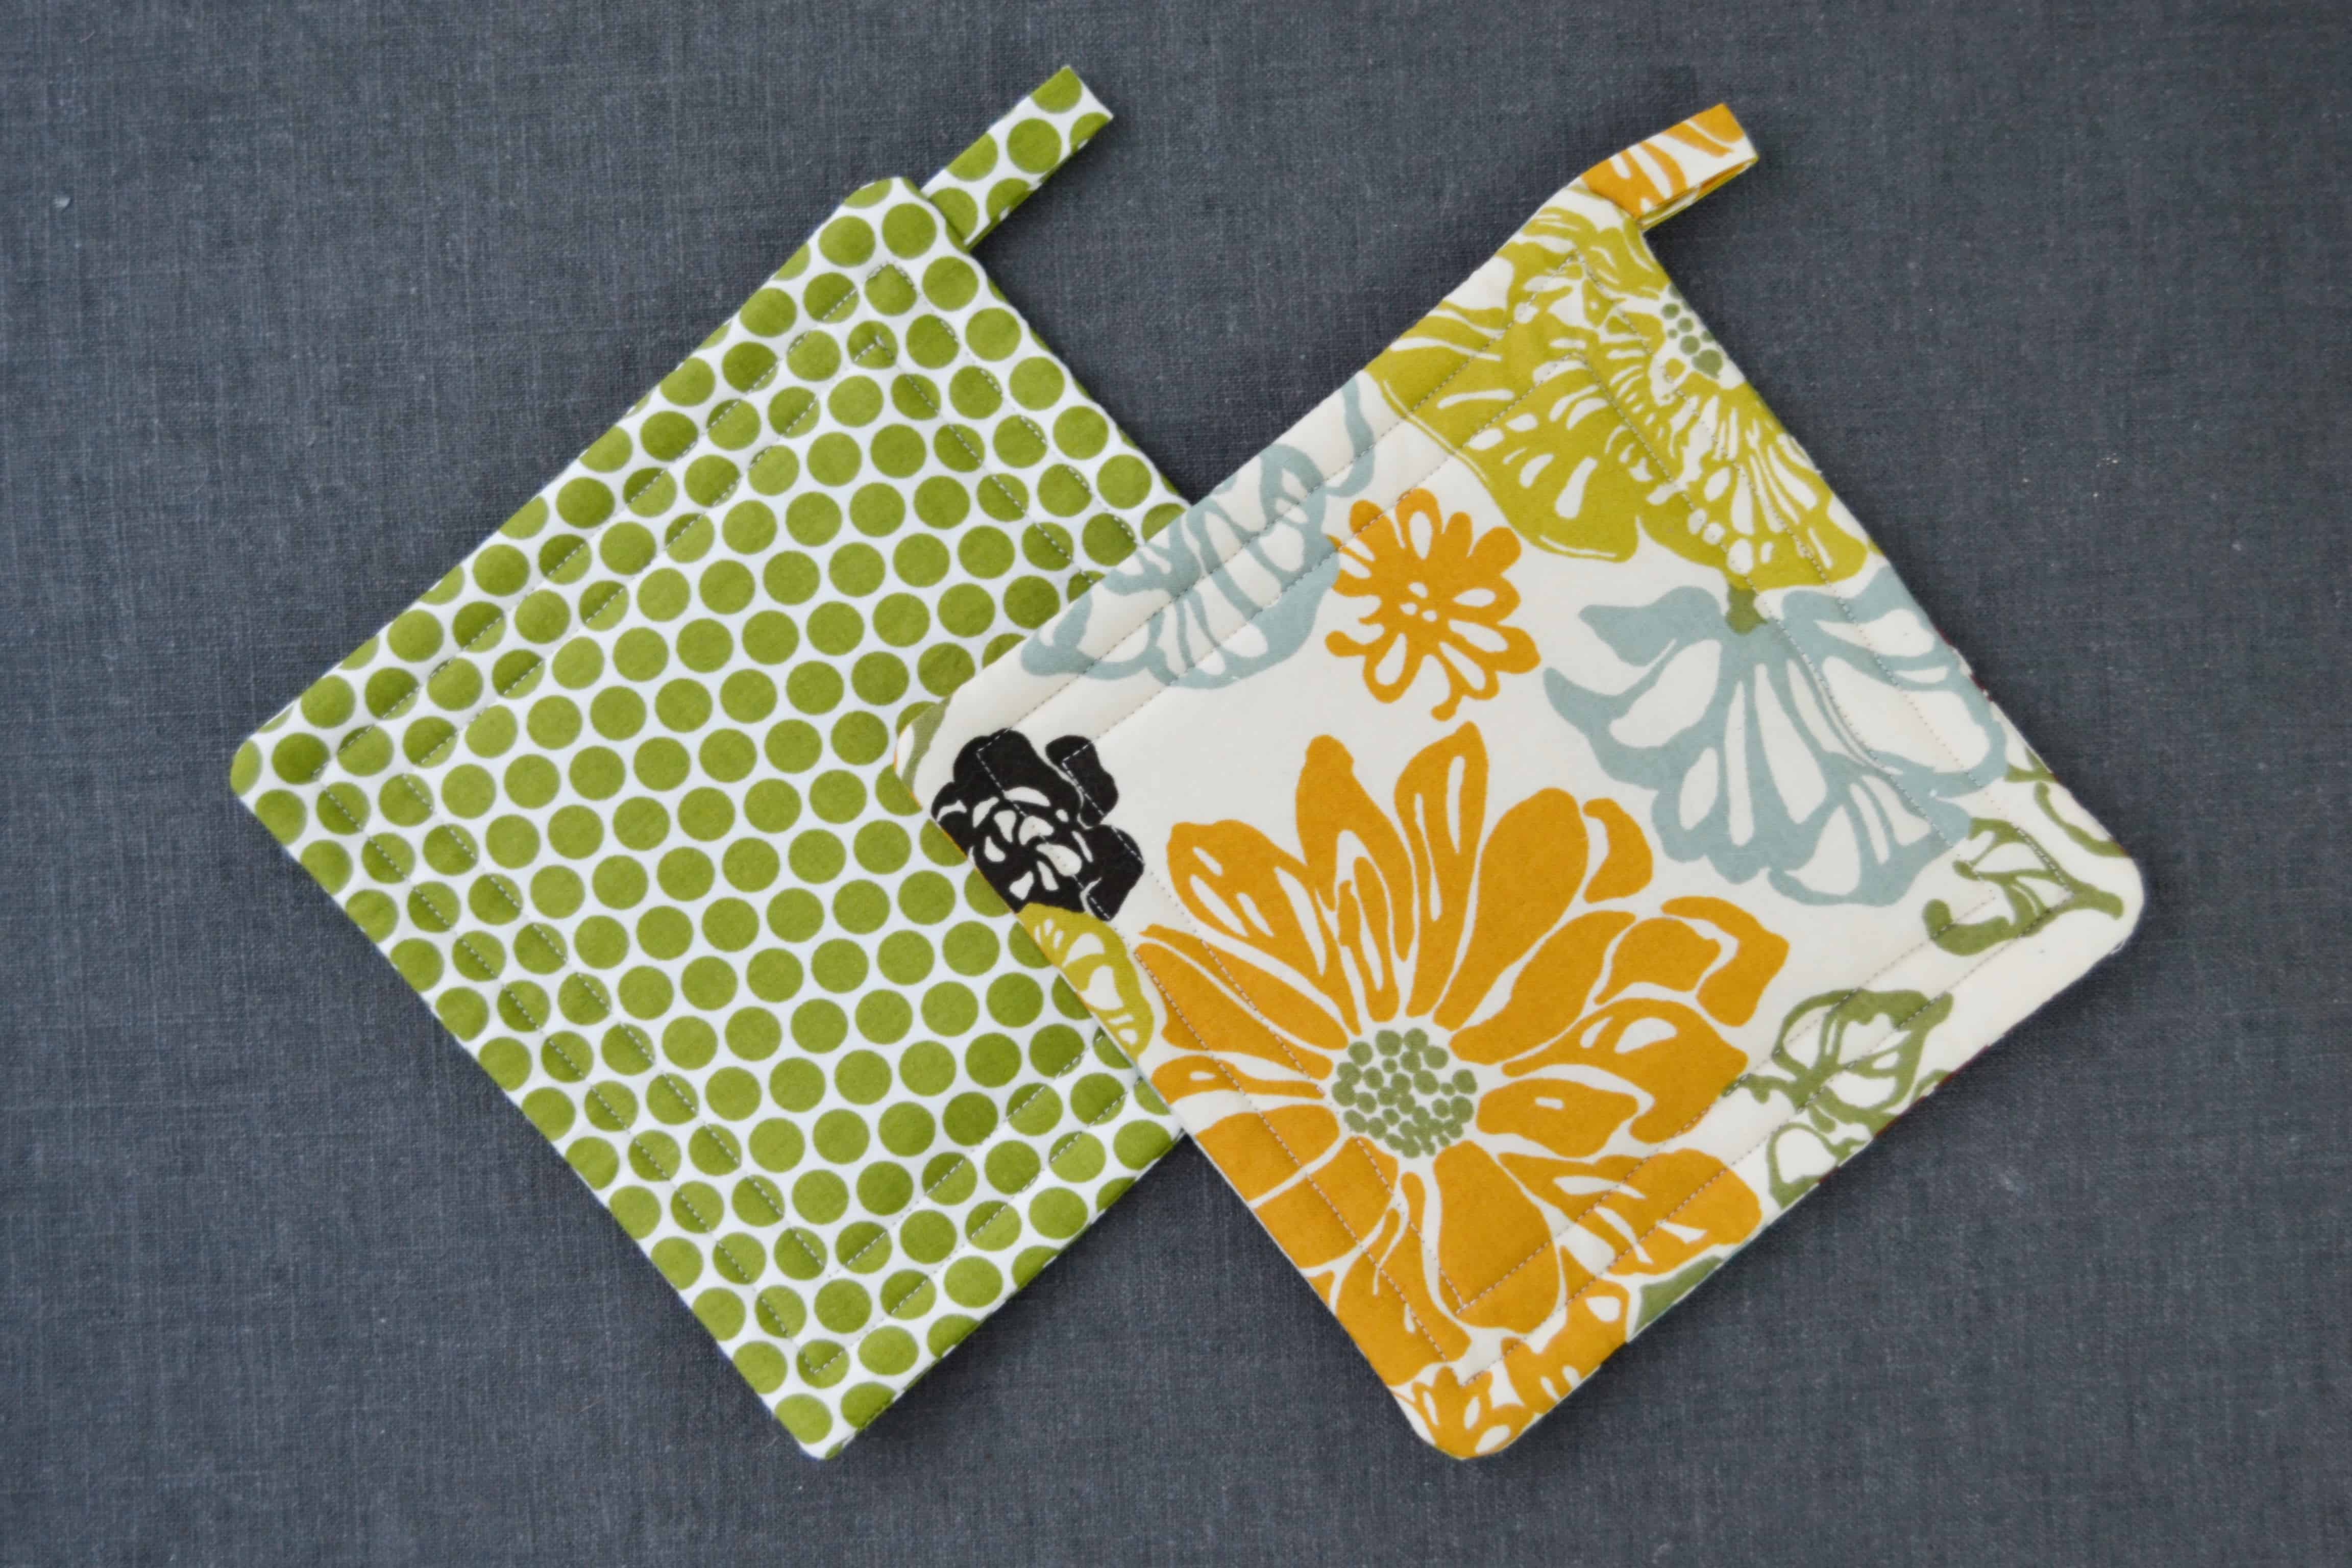 """Potholder Tutorial That's Easy for Beginners"" Free Pattern designed by Kat from Mary Martha Mama"